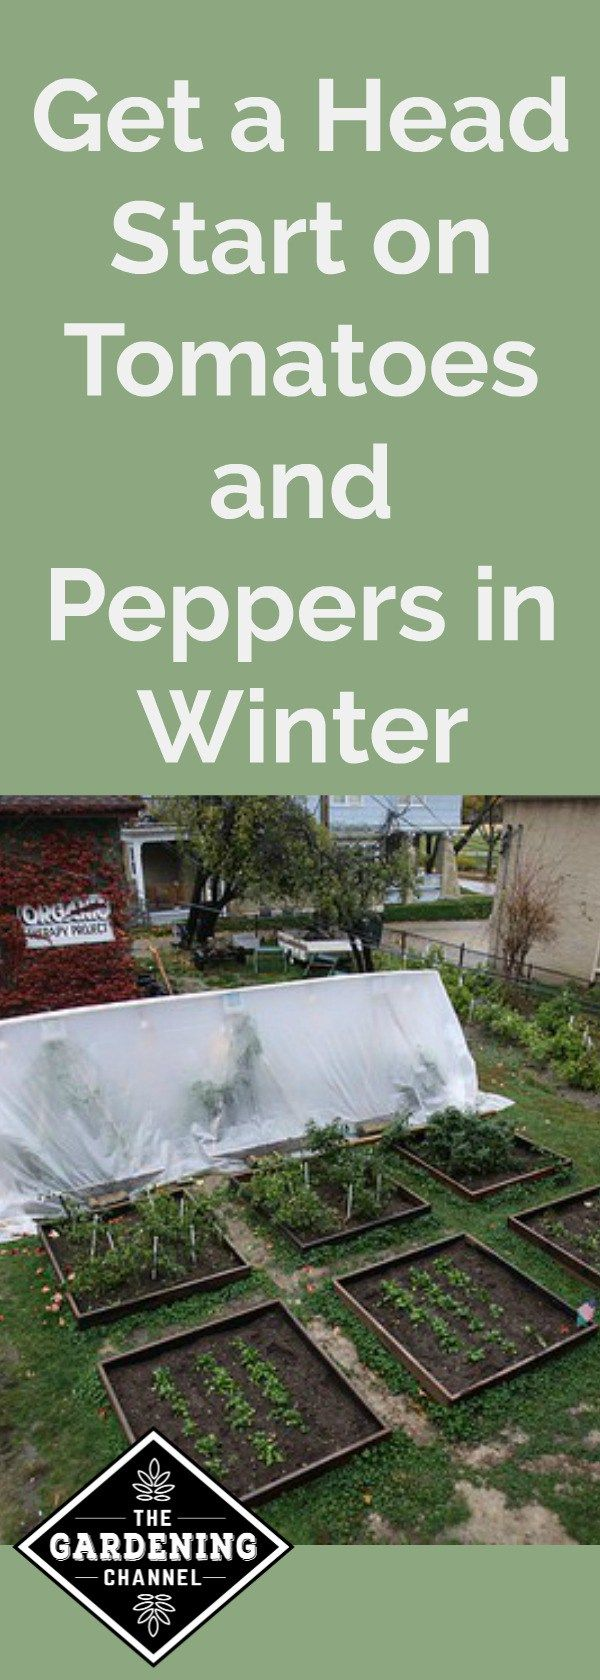 Get a head start on growing tomatoes and peppers in winter.  It doesn't have to be spring to start planning for vegetables in your garden